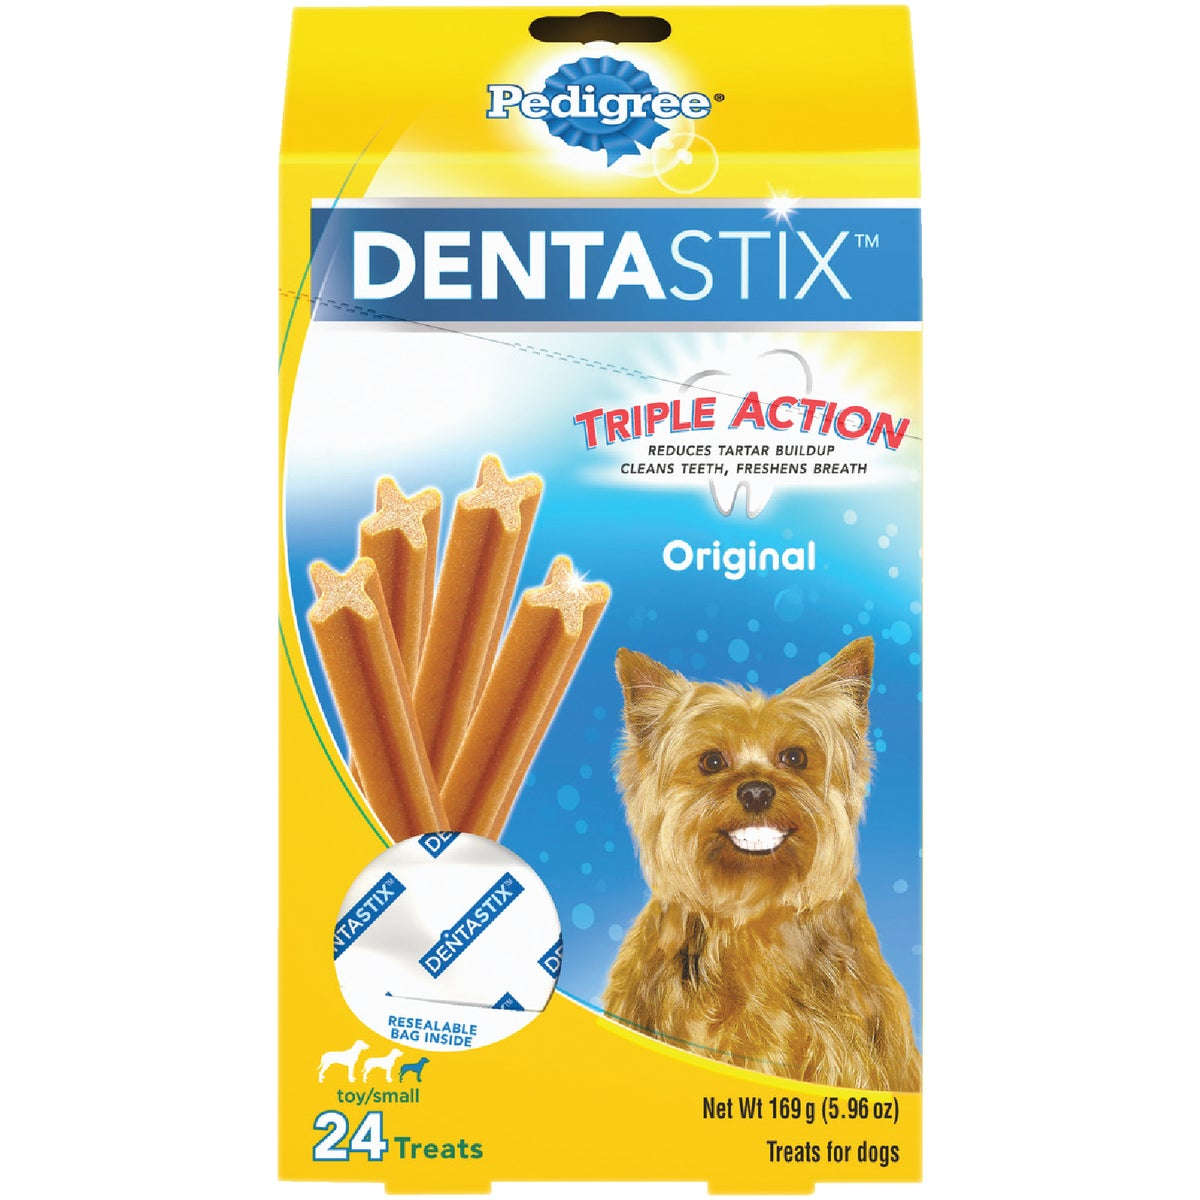 6OZ PEDIGREE DENTASTIX